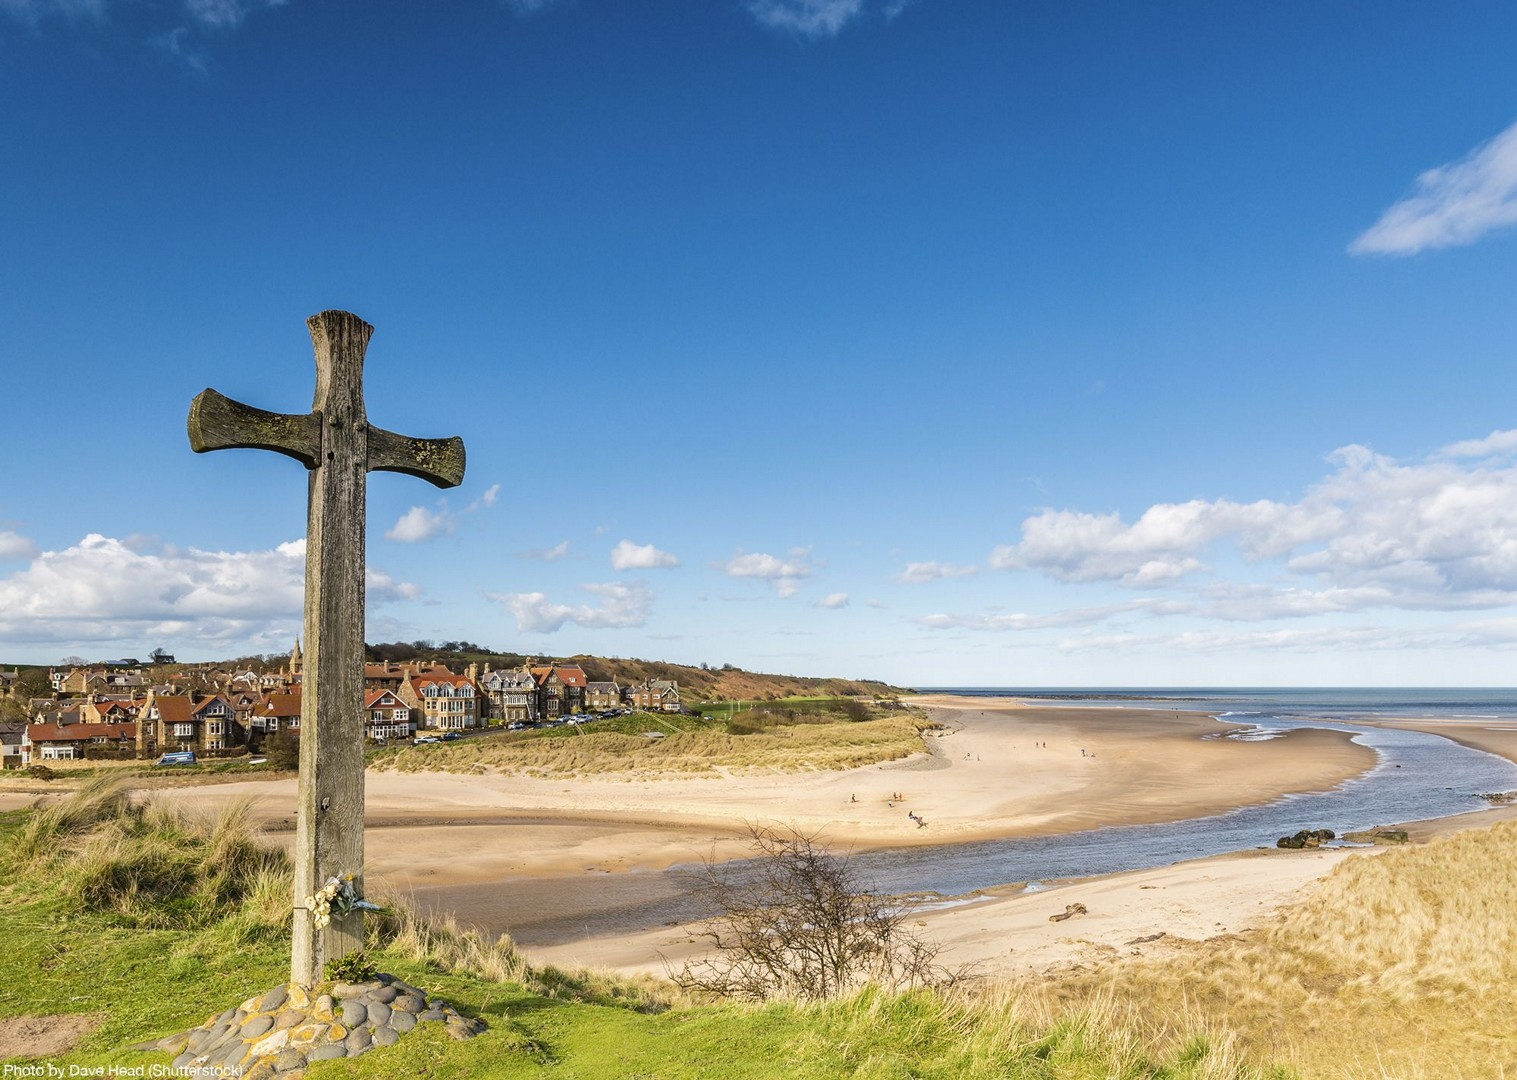 warkworth-beaches-cycling-holiday-bike-tour-self-guided-leisure-uk-england.jpg - UK - Coast and Castles - 6 Days Cycling - Self-Guided Leisure Cycling Holiday - Leisure Cycling